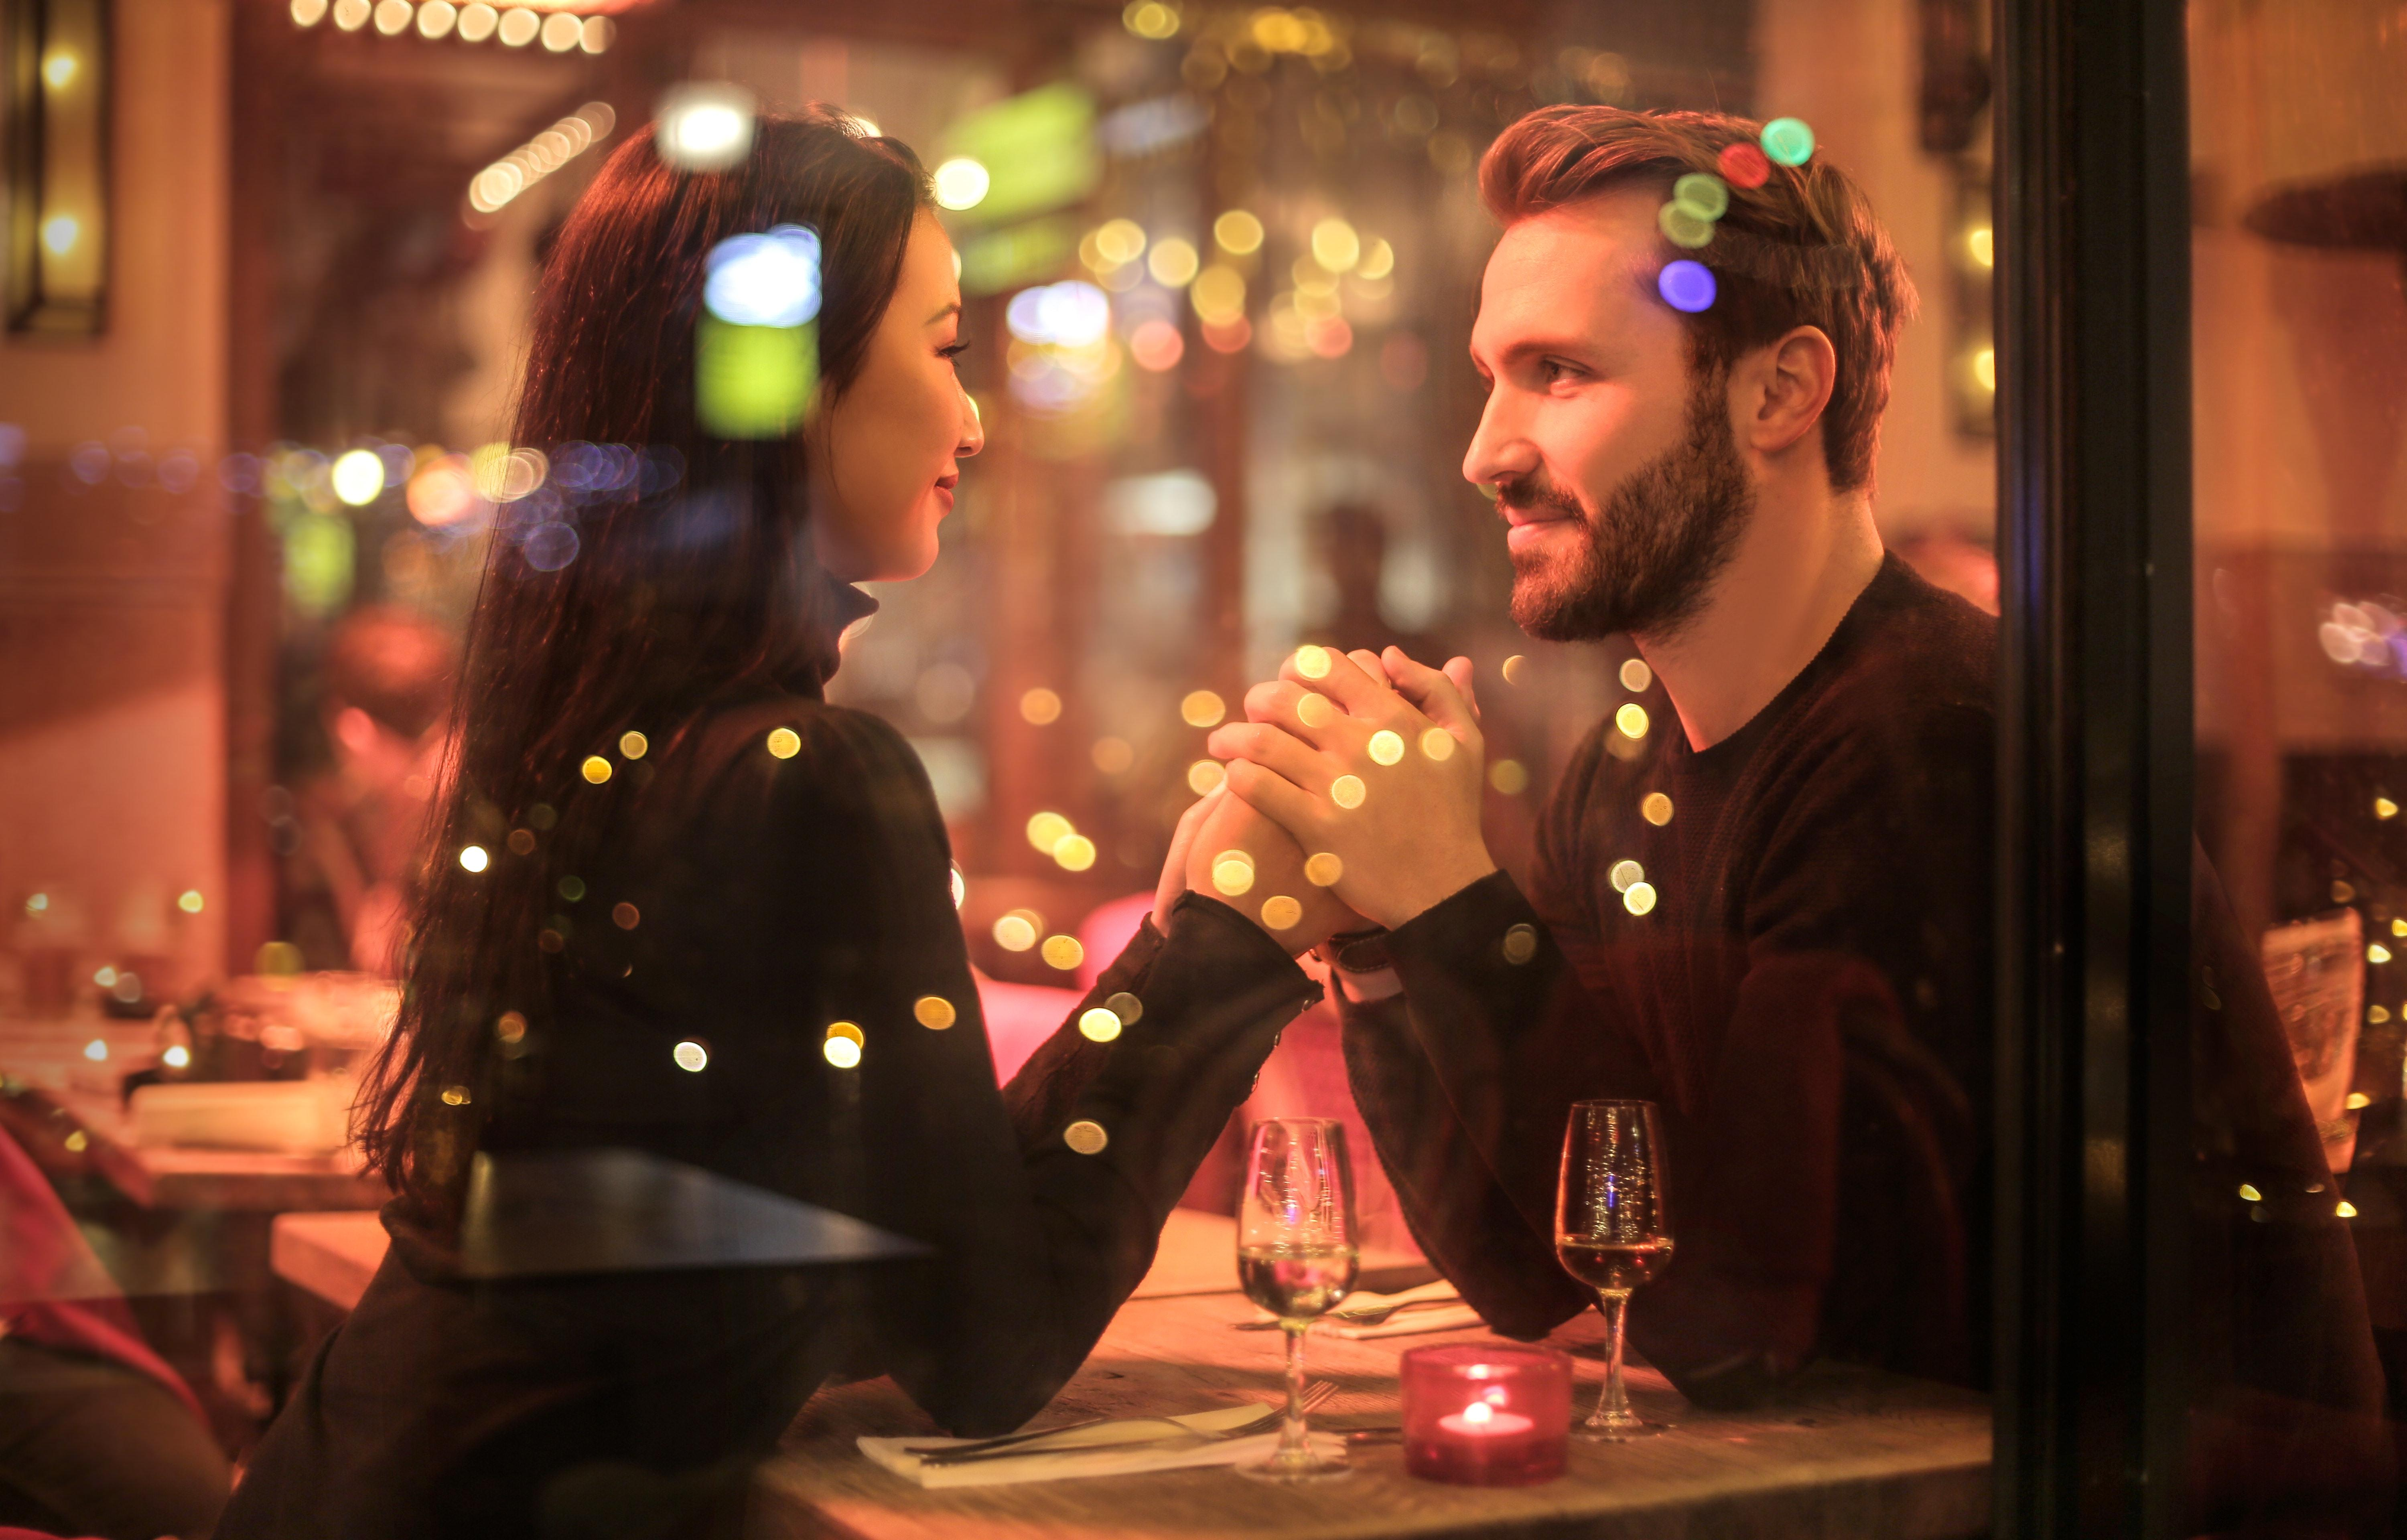 Melbourne Video Speed Dating - Filter Off